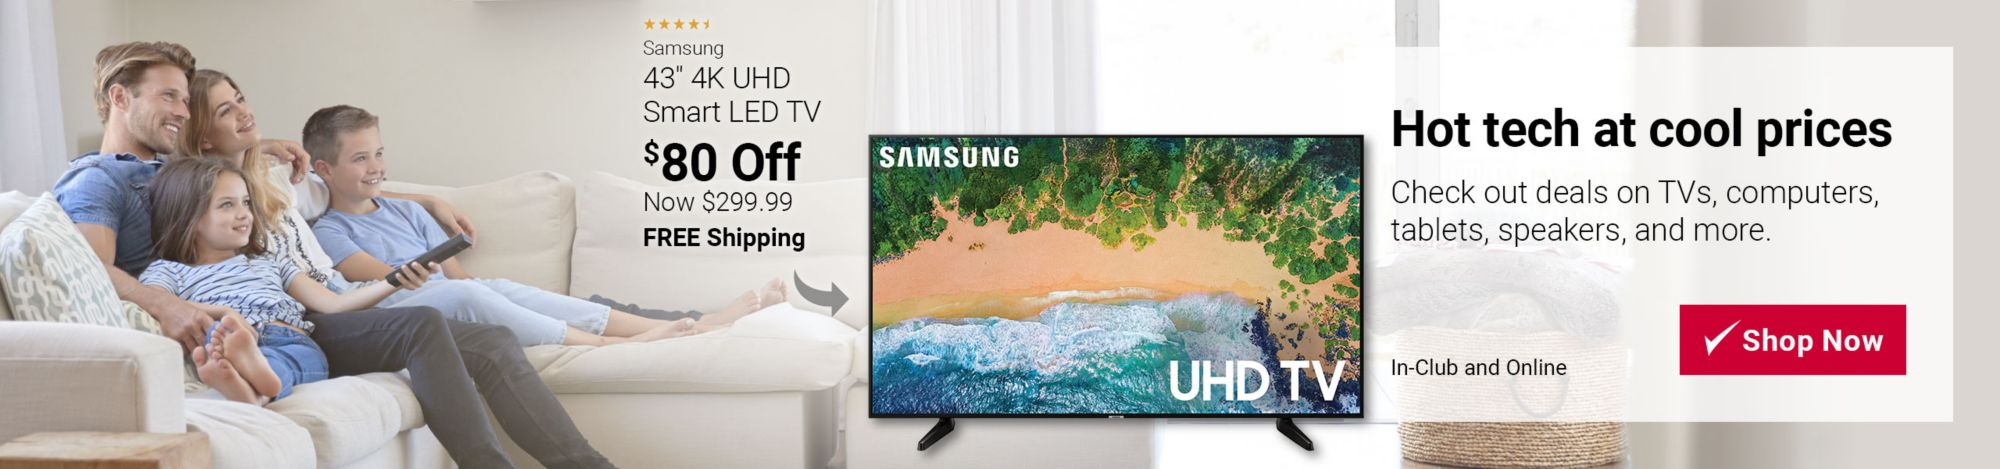 Hot tech at cool prices. Deals on TVs, computers, tablets, speakers, and more. Featured item: $80 off Samsung 43 inch 4K Smart TV. Now $299.99 with free shipping. Click to shop now.